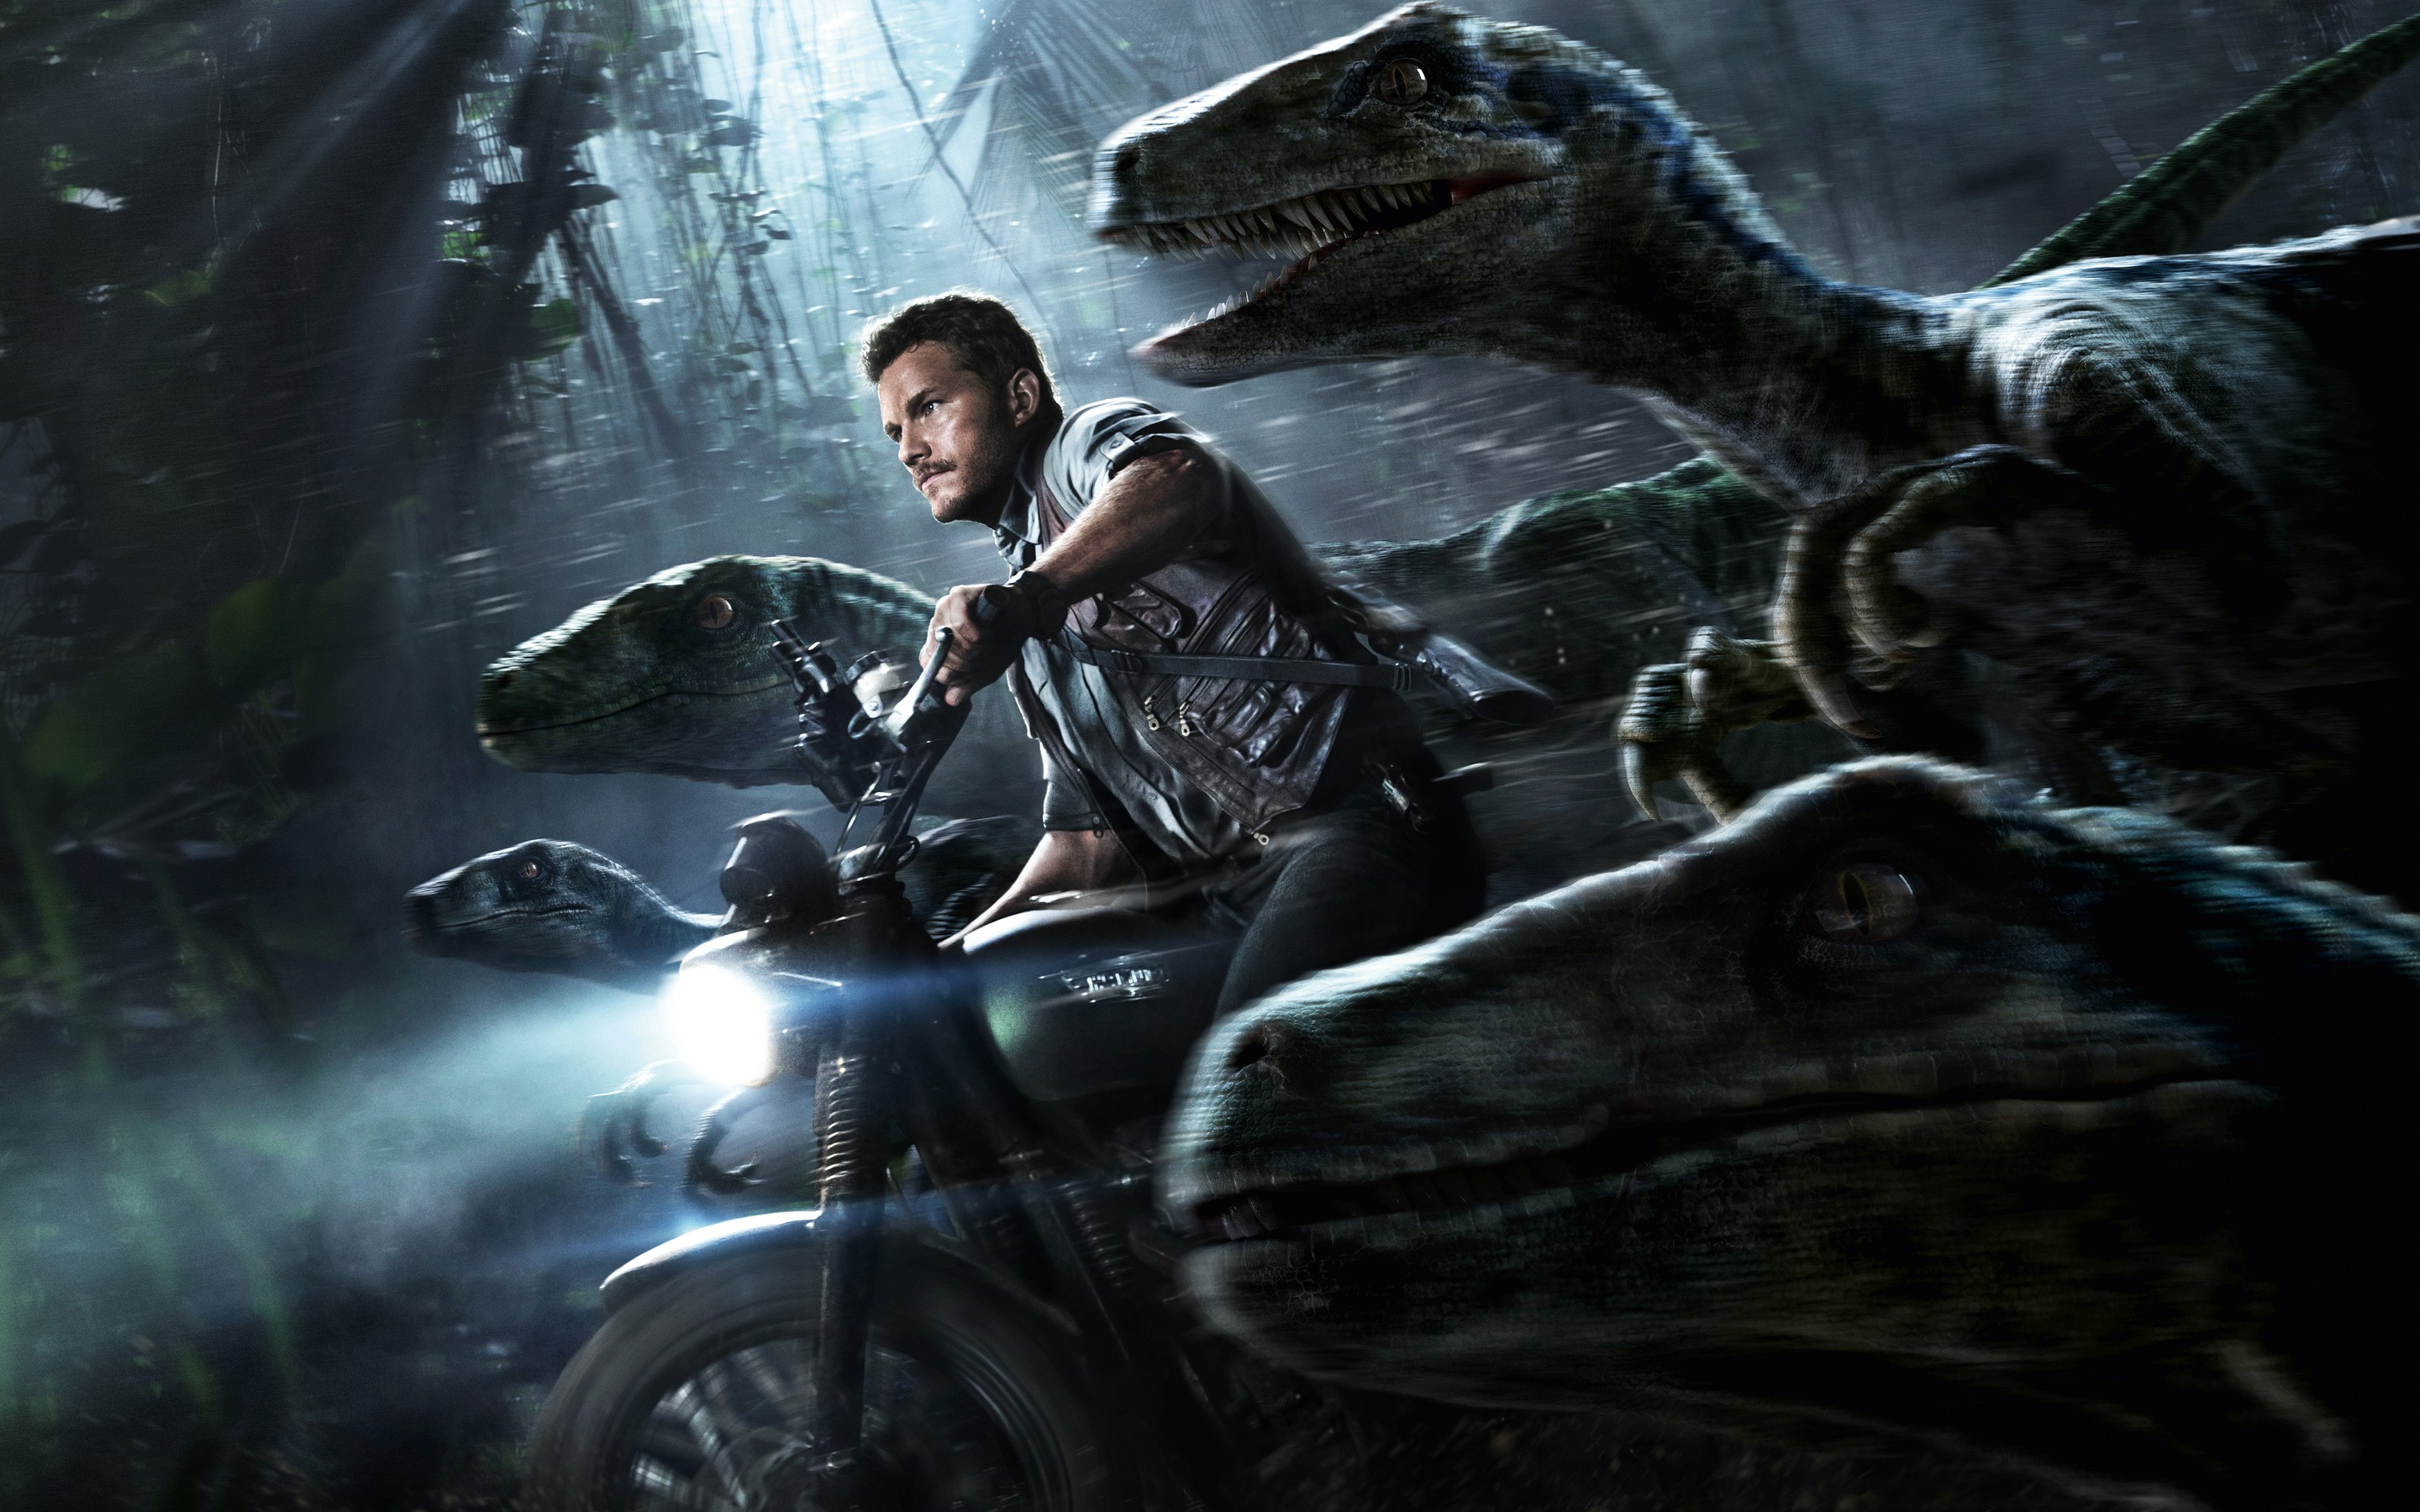 Jurassic World Wallpapers Images Backgrounds Photos and Pictures